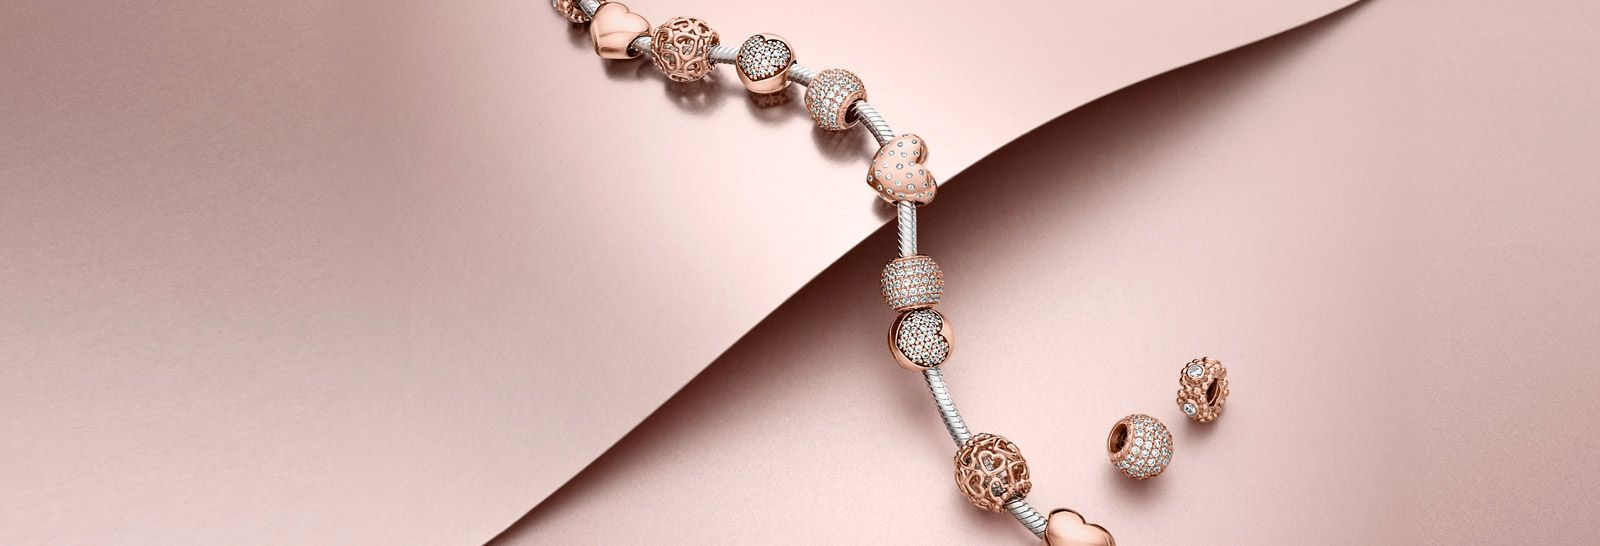 This is gorgeous i want one pandora rose collection